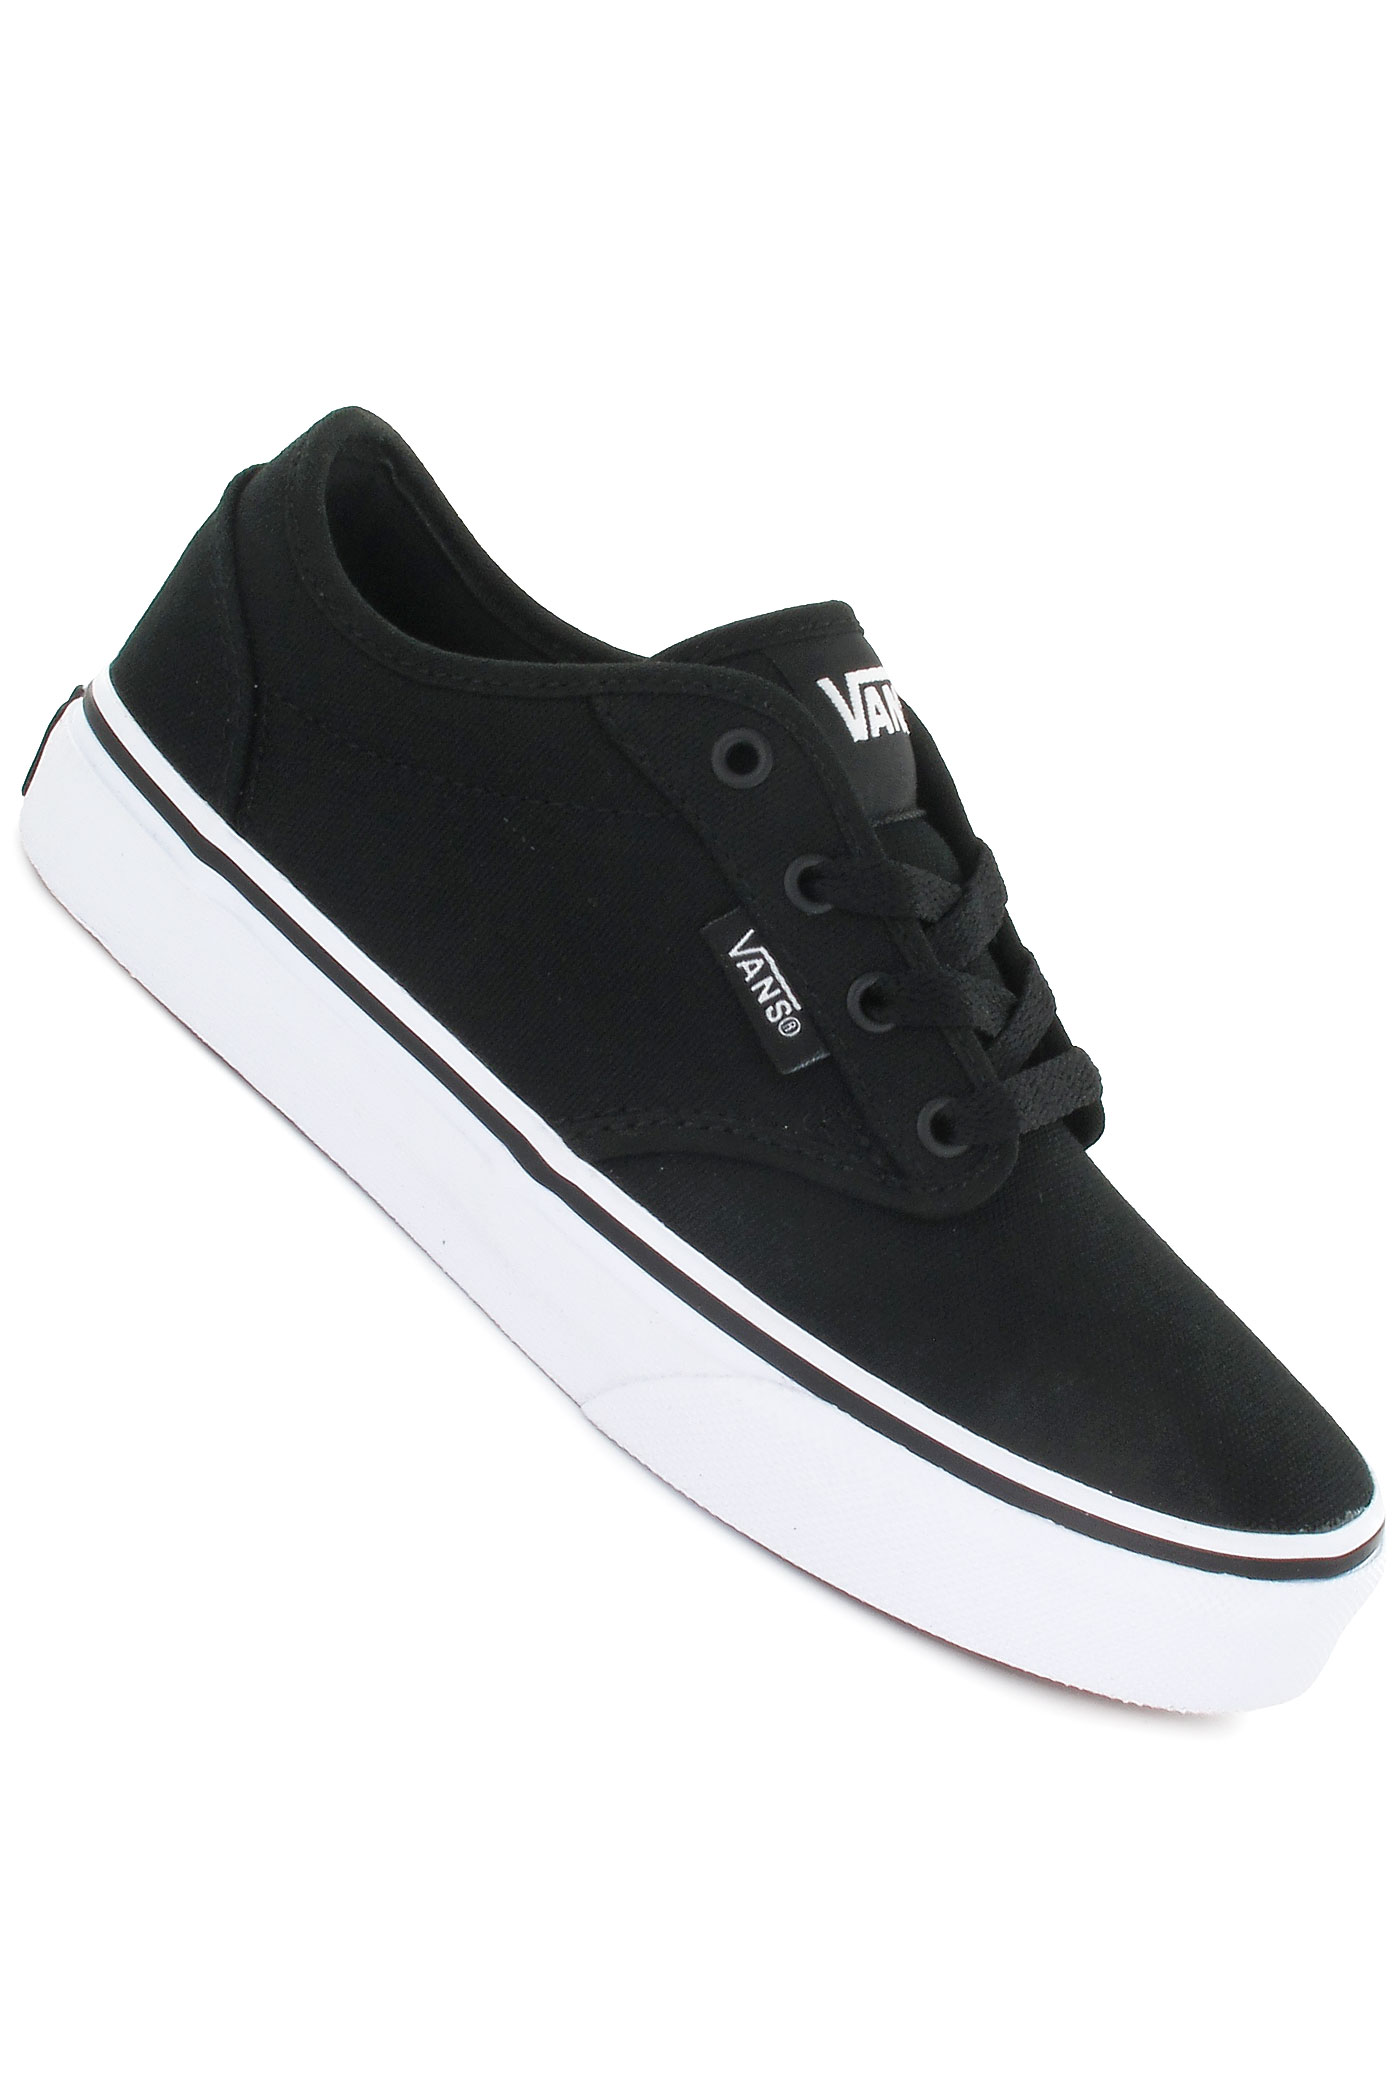 vans atwood canvas shoe black white buy at skatedeluxe